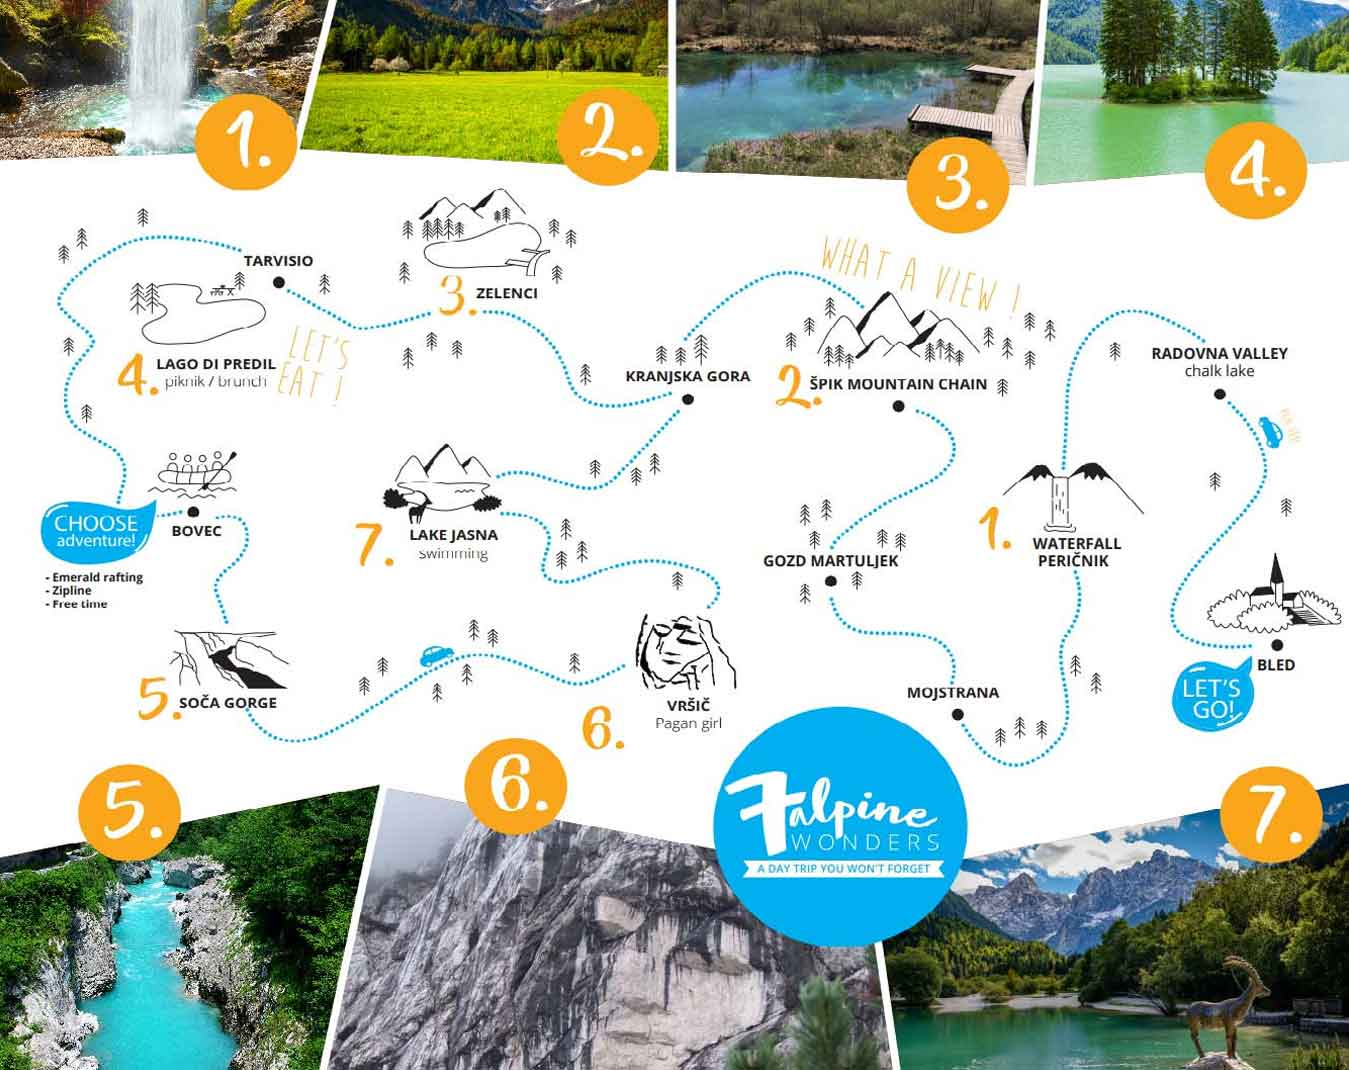 Explore the best sights of Slovenia in a one day tour